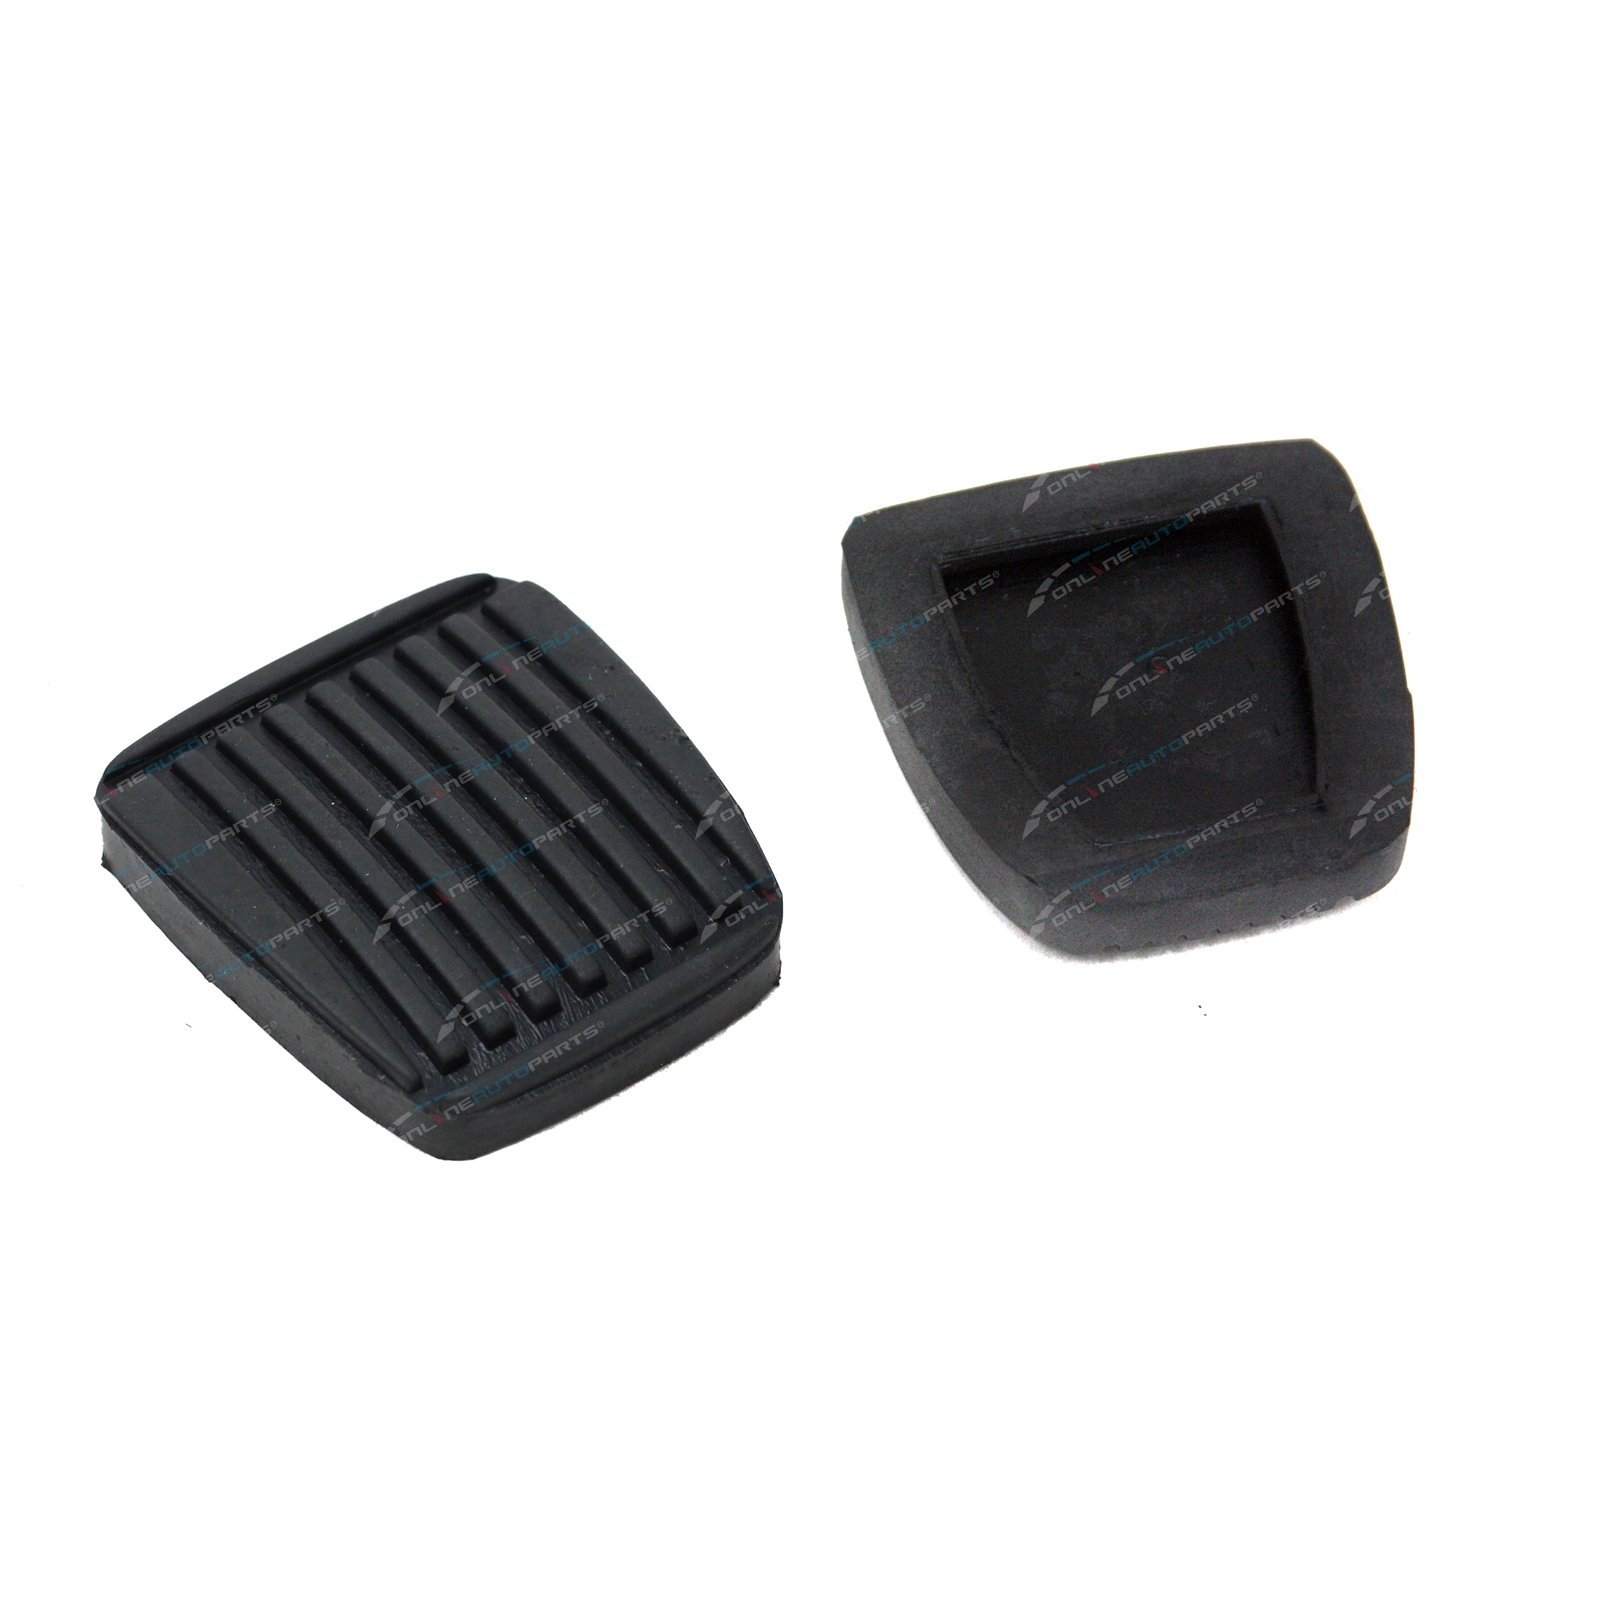 CLUTCH SUITS TOYOTA HILUX PEDAL PAD RUBBER BRAKE CHECK APPLICATION BELOW